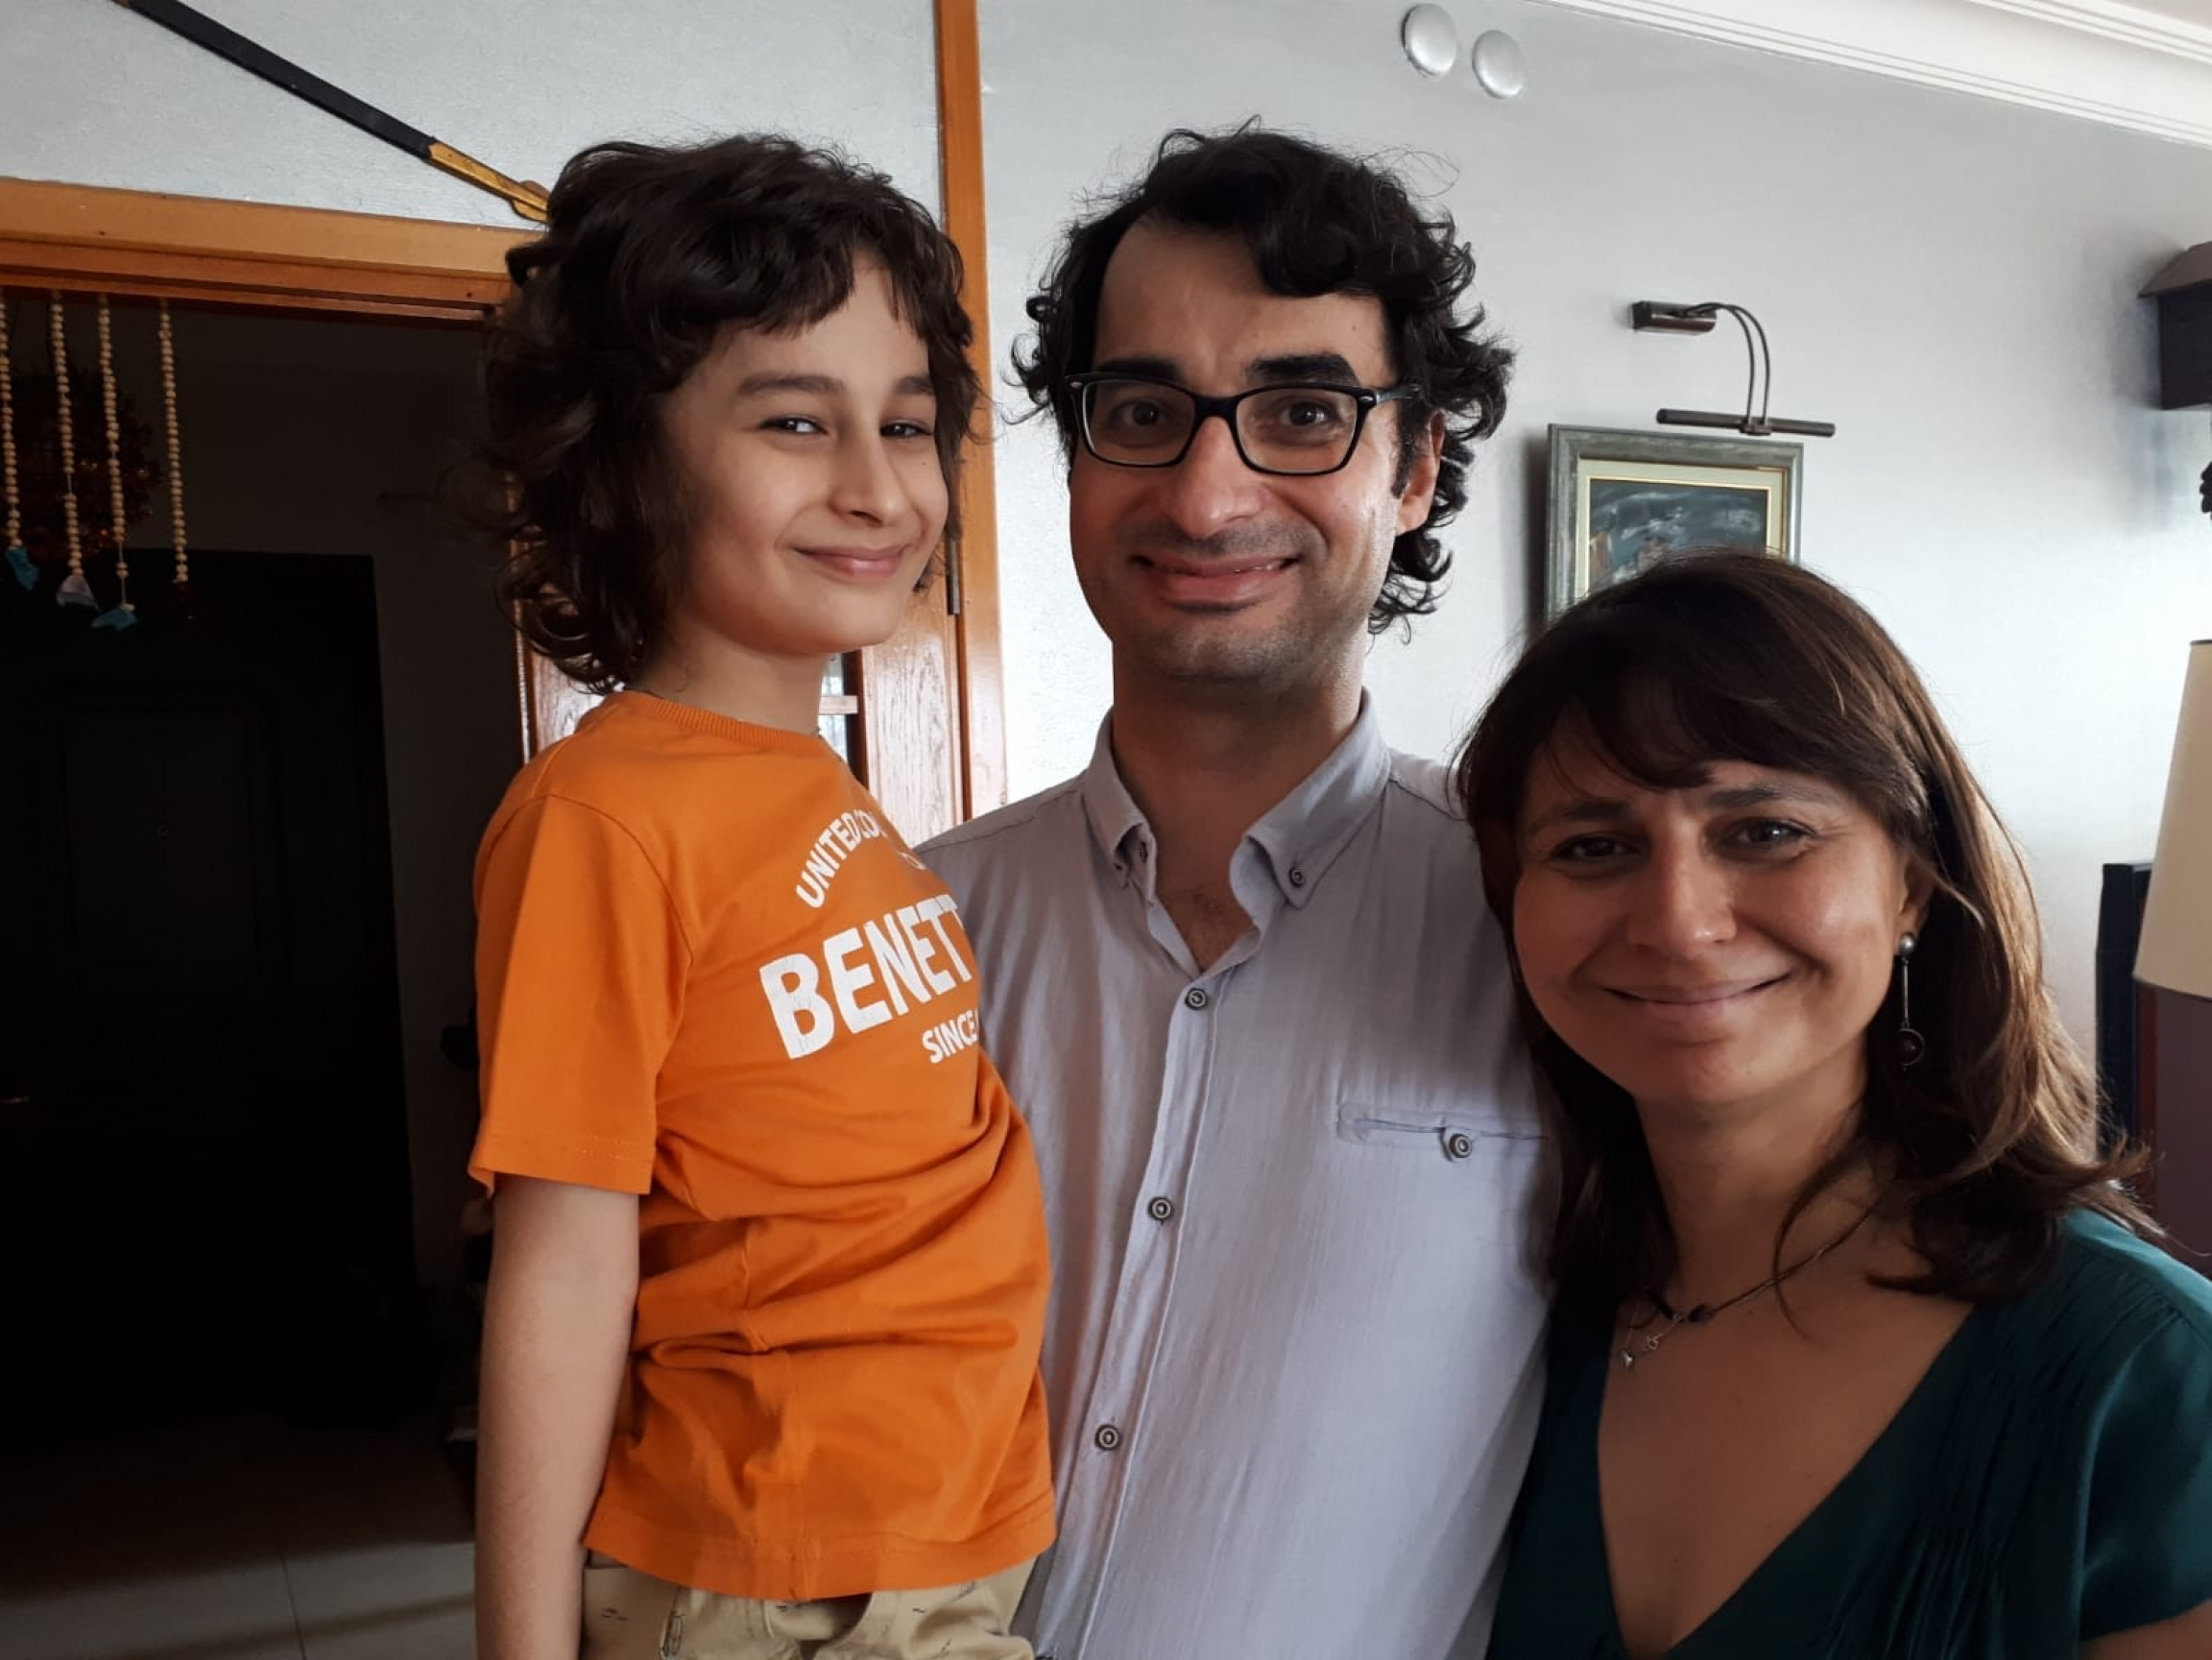 Özge Terkoğlu and her husband, Barış Terkoğlu, are pictured with their young son.